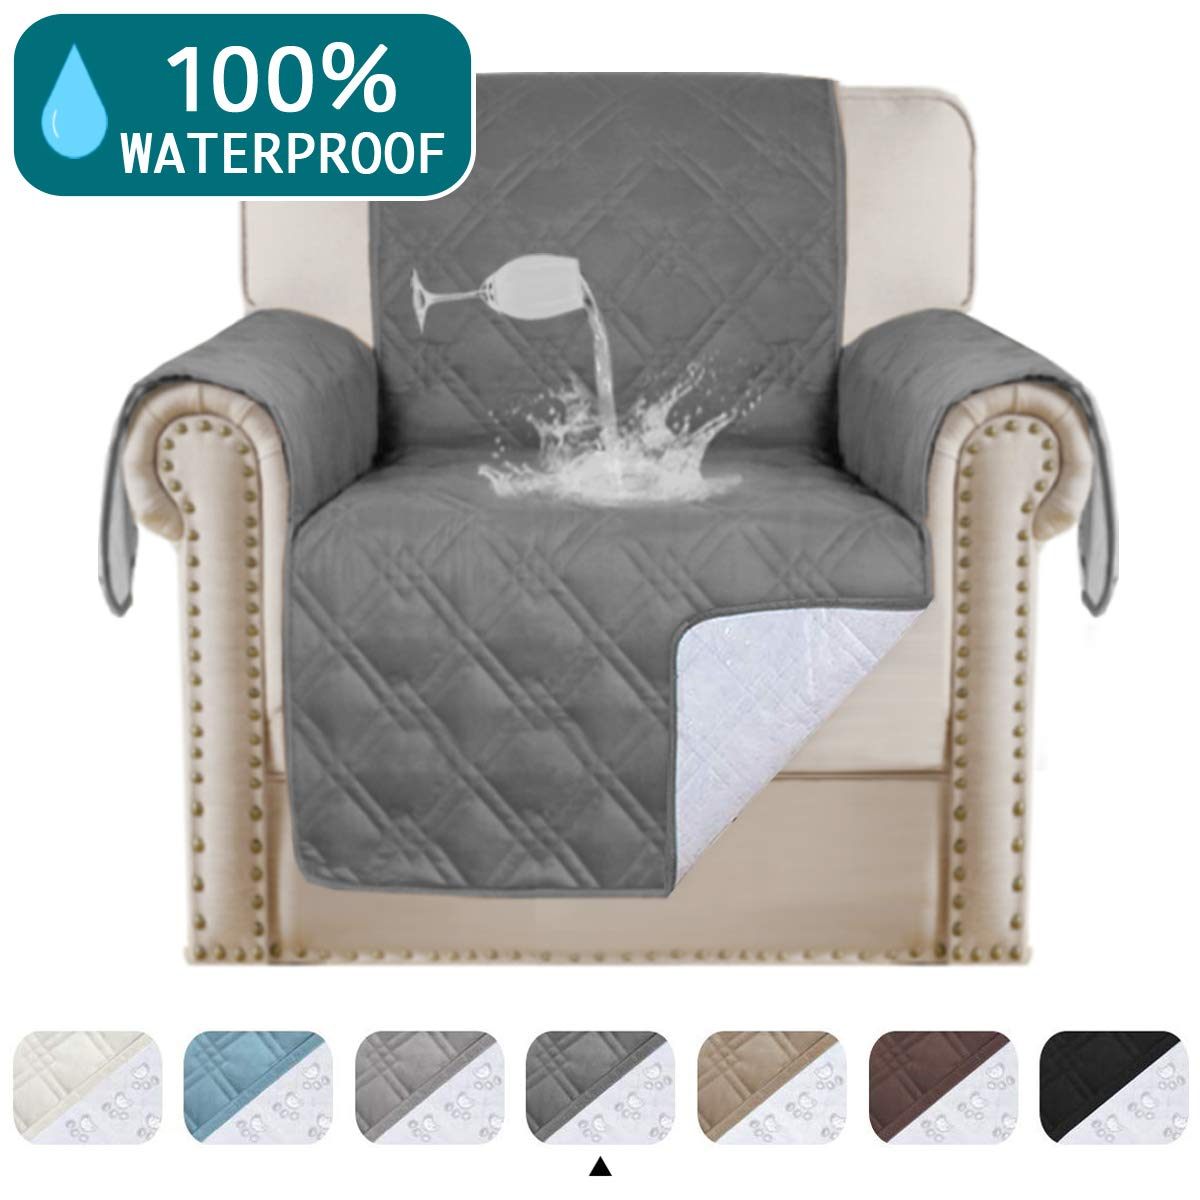 Turquoize Waterproof Sofa Cover Leather Couch Protector Furniture Covers for Living Room Non-Slip Couch Covers for Dogs…